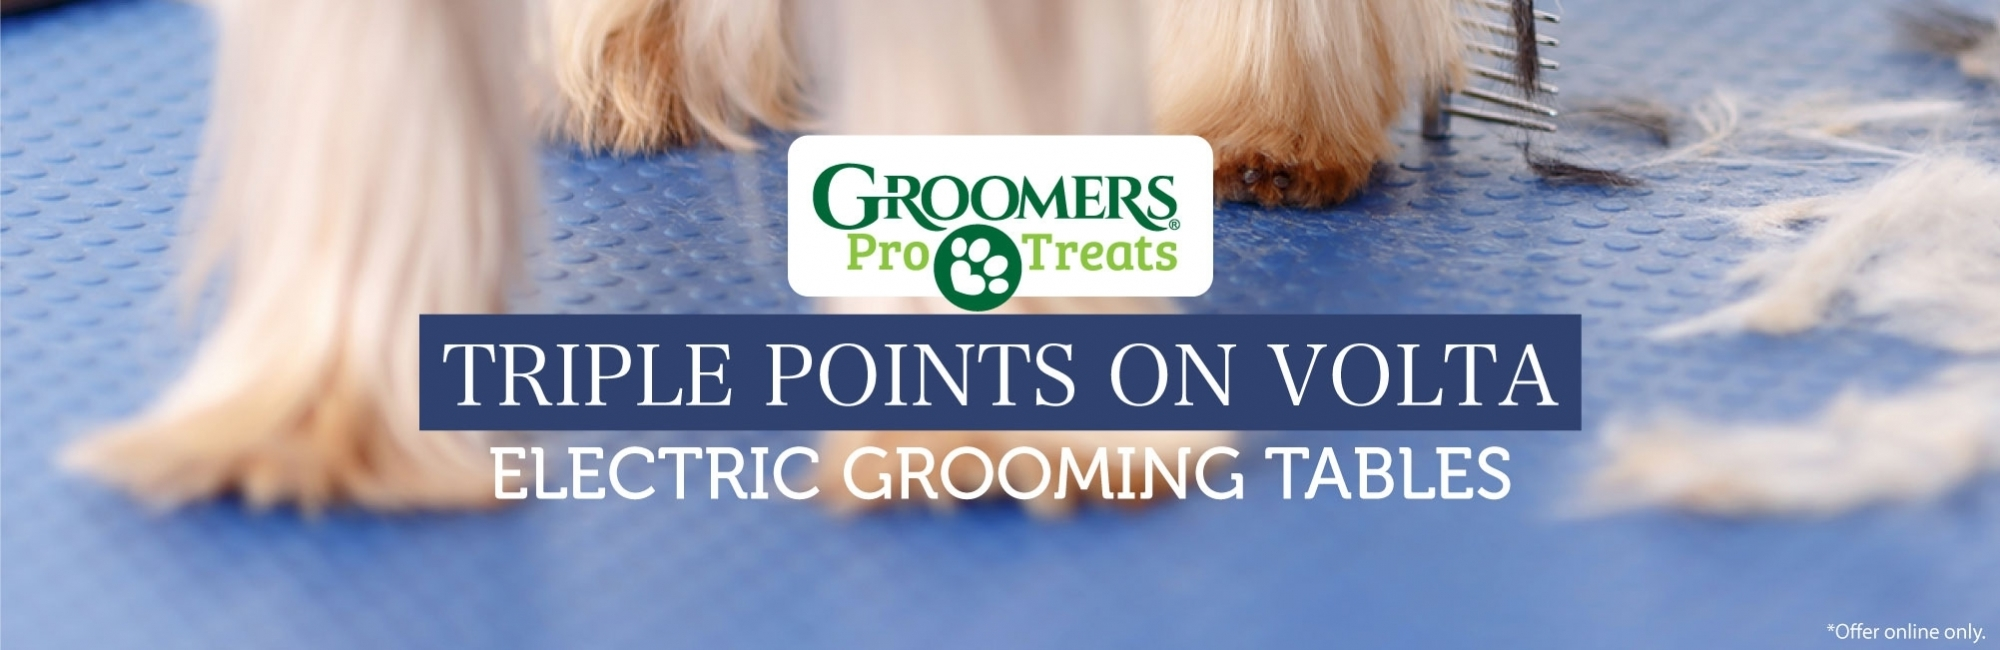 Triple Points On Volta Elecrtic Grooming Tables